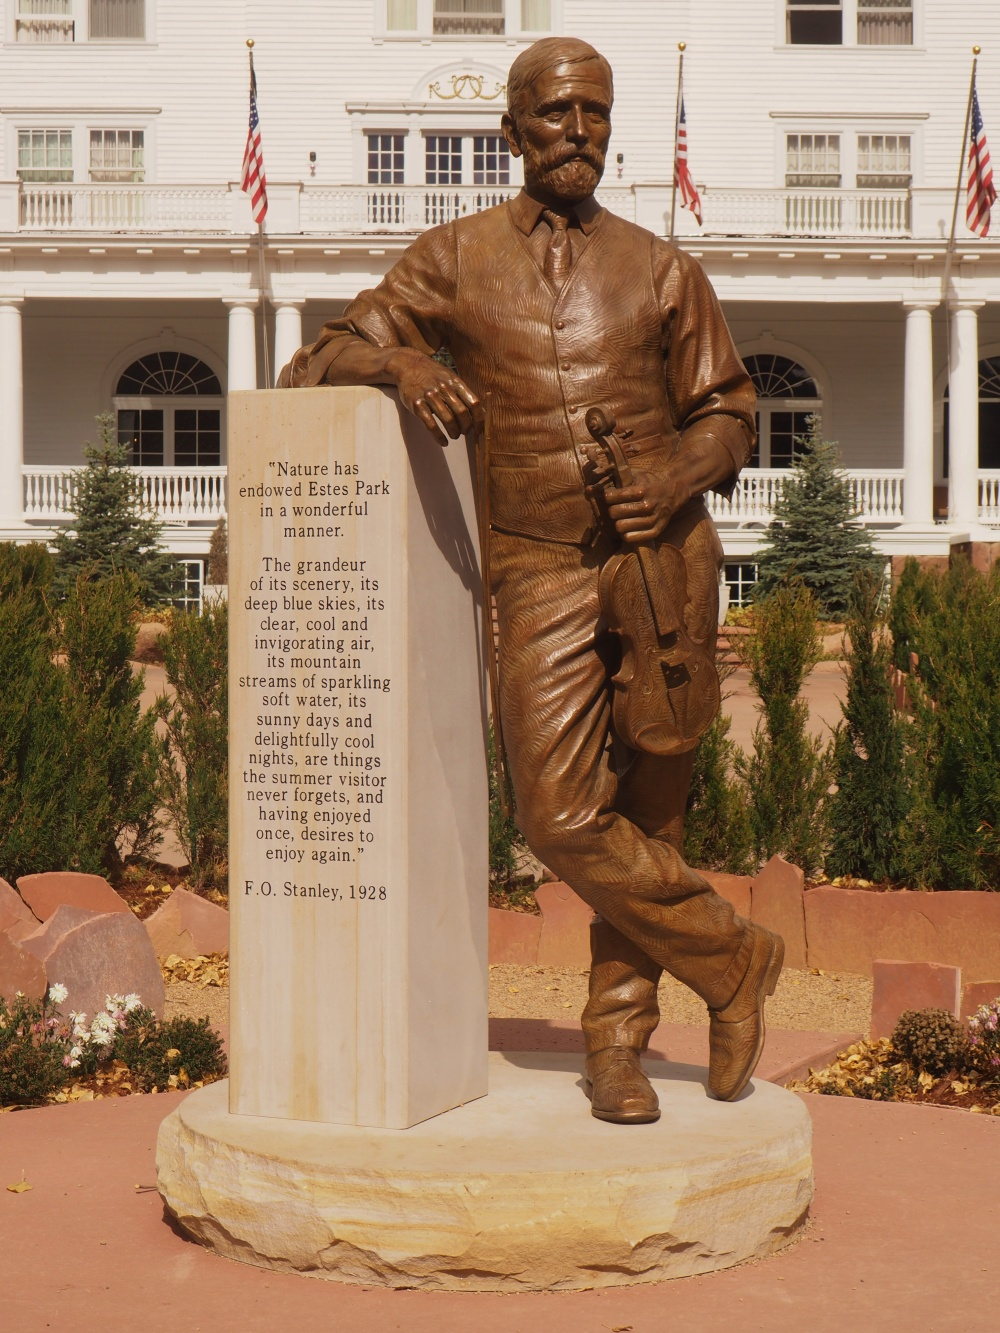 statue-of-fo-stanley-in-front-of-his-hotel